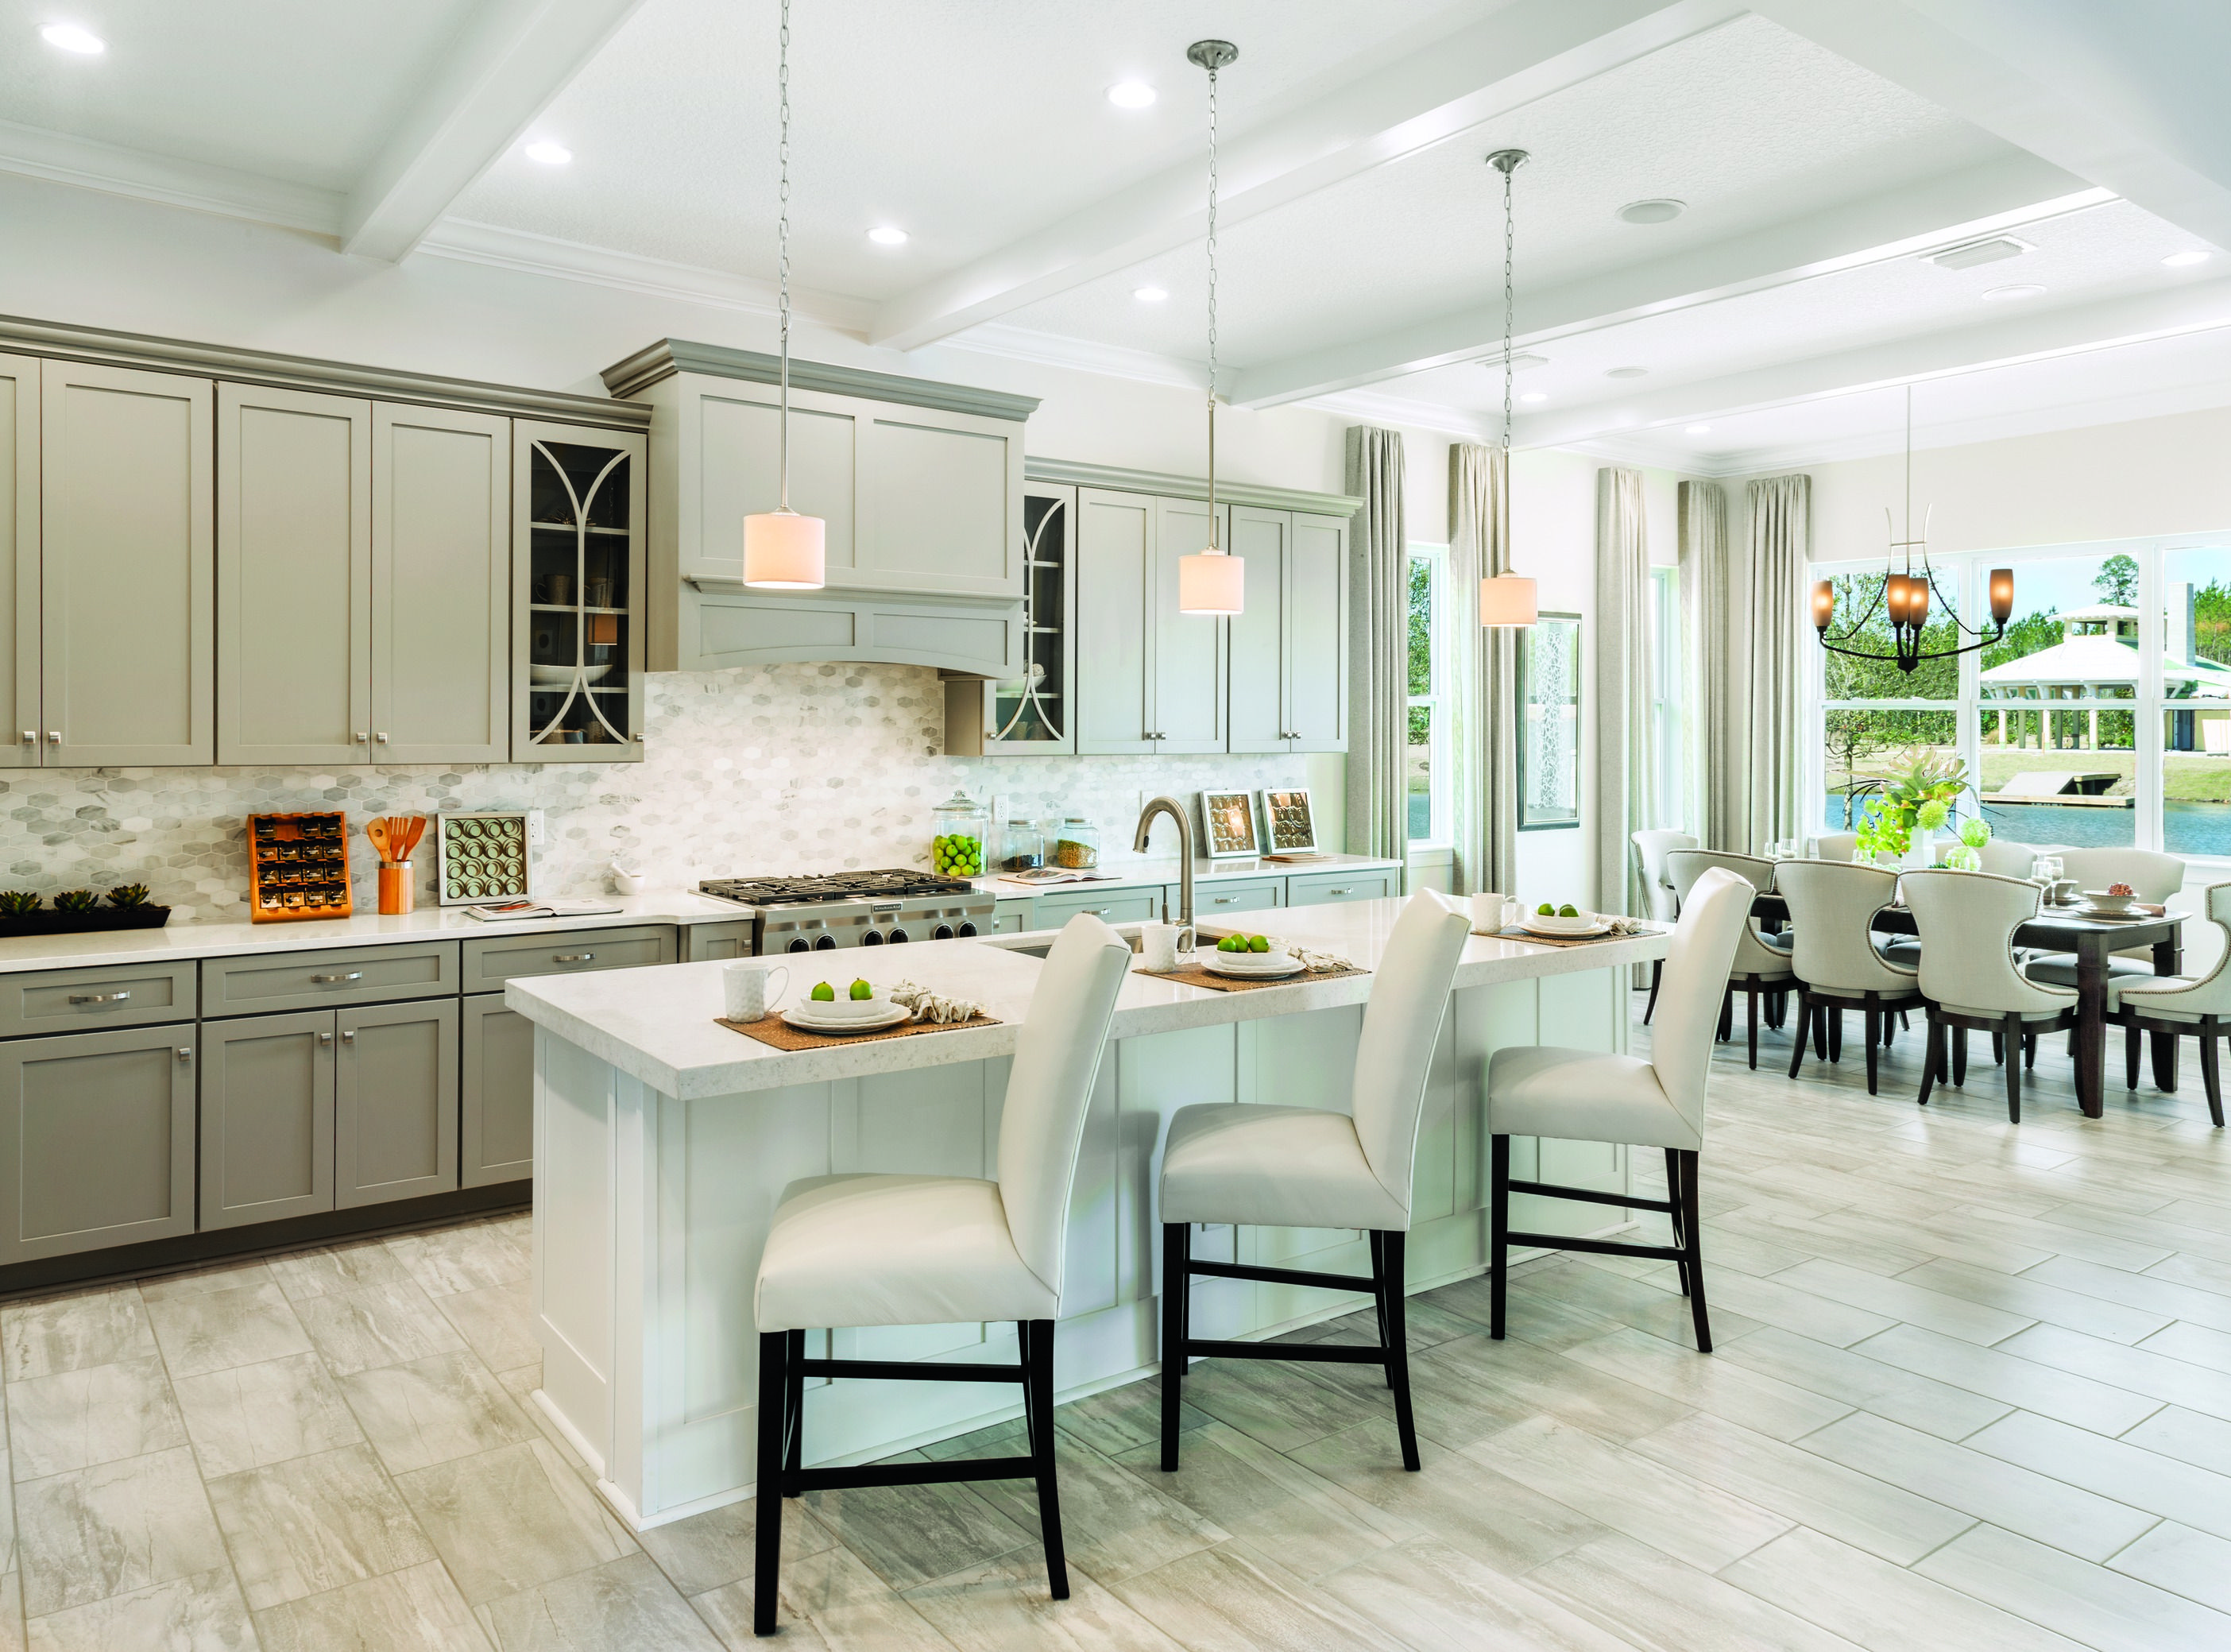 Impress Guests With This Exquisite Kitchen Accented By Neutral